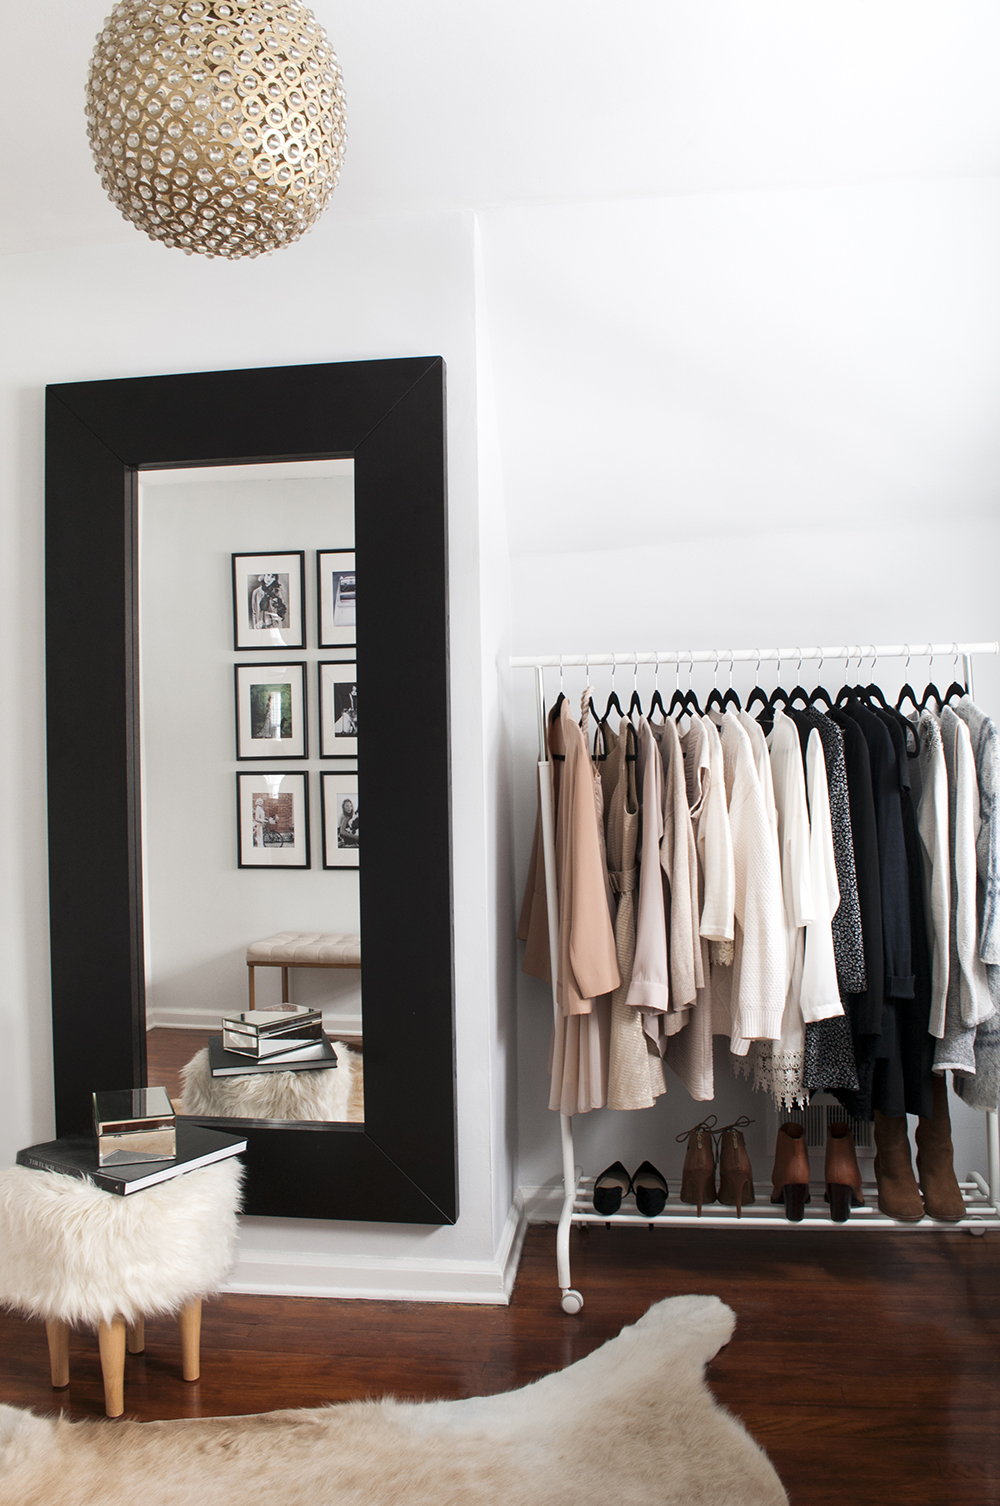 Roundup : Floor Length Mirrors - Room for Tuesday